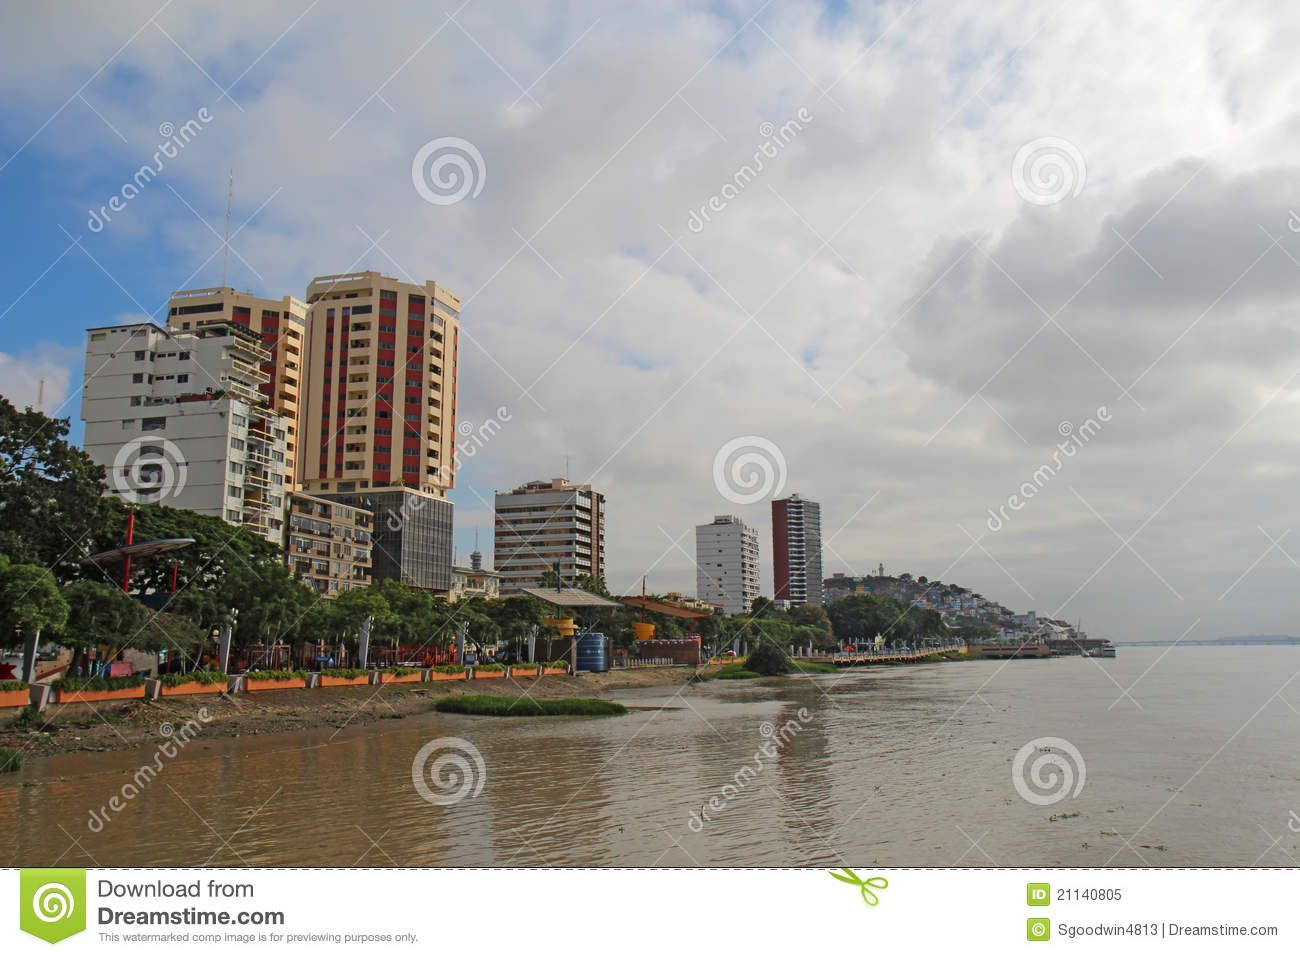 Section of the Malecon 2000 in Guayaquil, Ecuador. View of the northern part of #Sponsored , #ad, #advertisement, #Malecon, #northern, #part, #Section